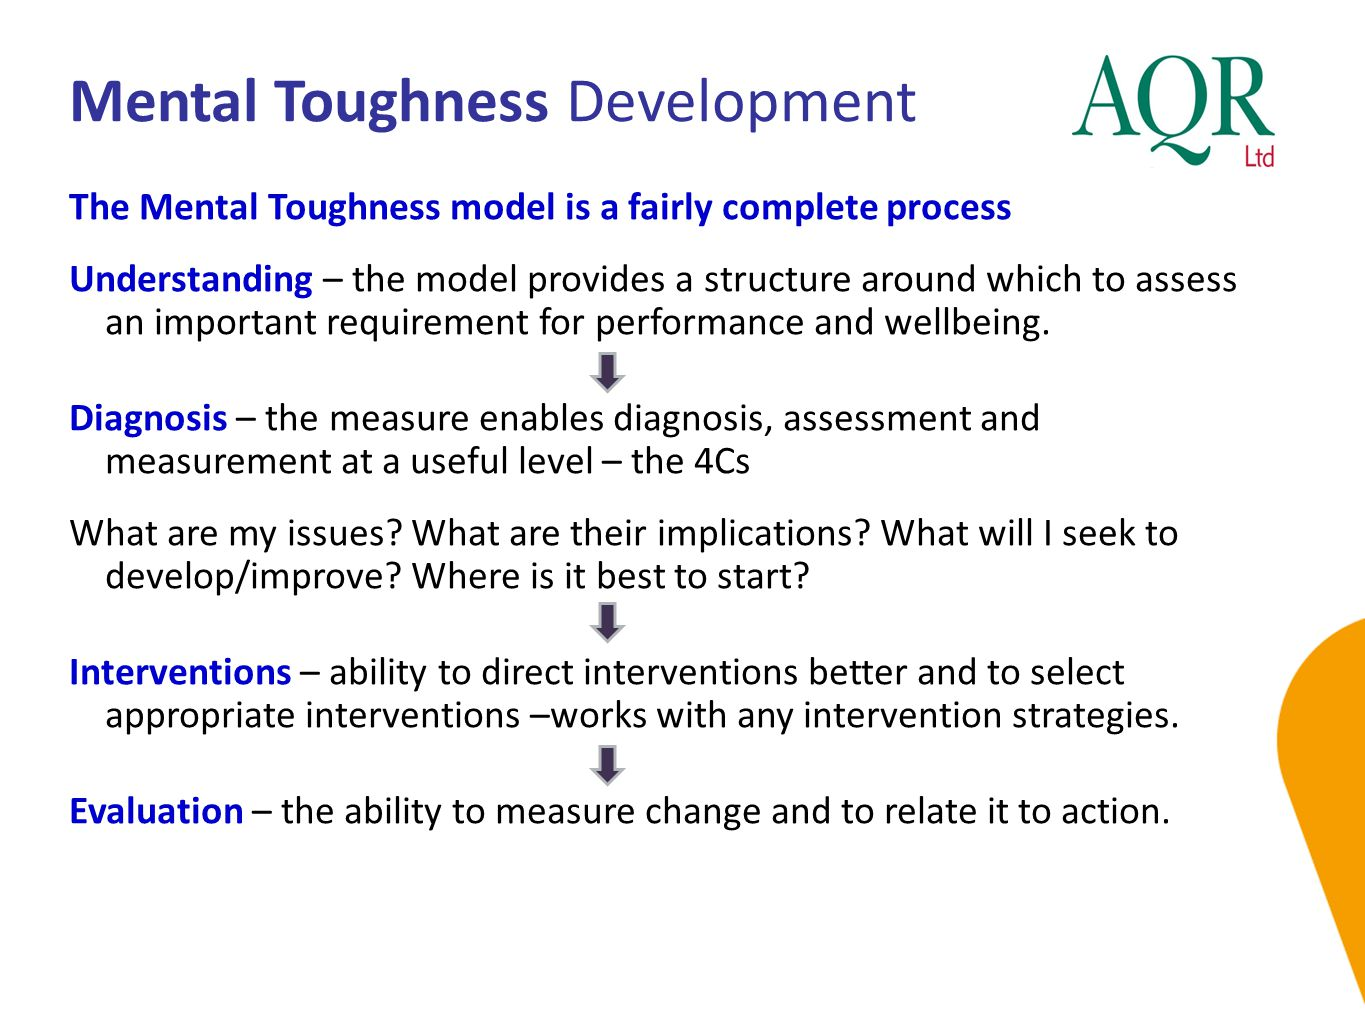 Mental Toughness Development